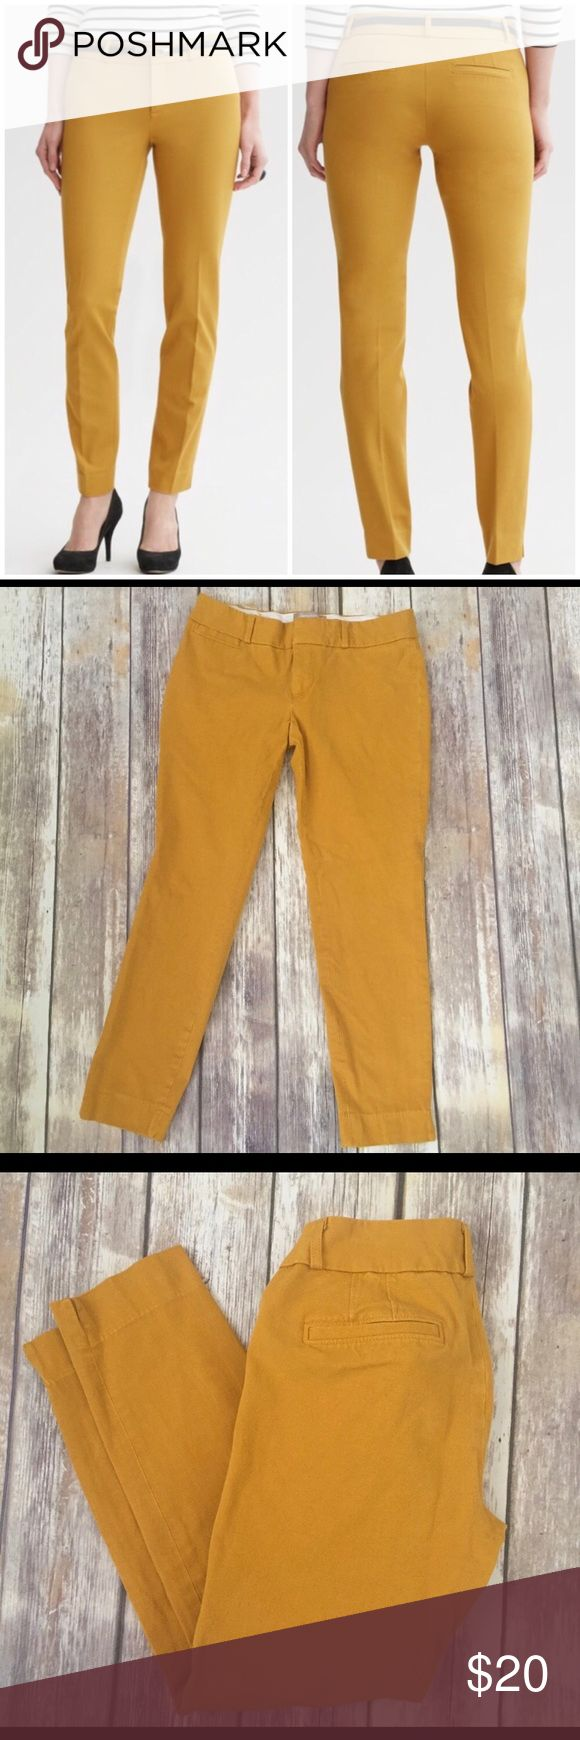 "Banana Republic Sloan Fit Pants in Mustard Banana Republic Sloan Fit Pants in mustard yellow. Very good condition with no flaws. Stretchy and made of 56% viscose, 39% cotton, and 5% spandex. Size 6. Approximate measurements flat and unstretched: waist 30"", inseam 26.5"".  ⚓️ No holds or trades. I negotiate only through the offer button. Thank you for looking! 🚭🐩T2 Banana Republic Pants Ankle & Cropped"